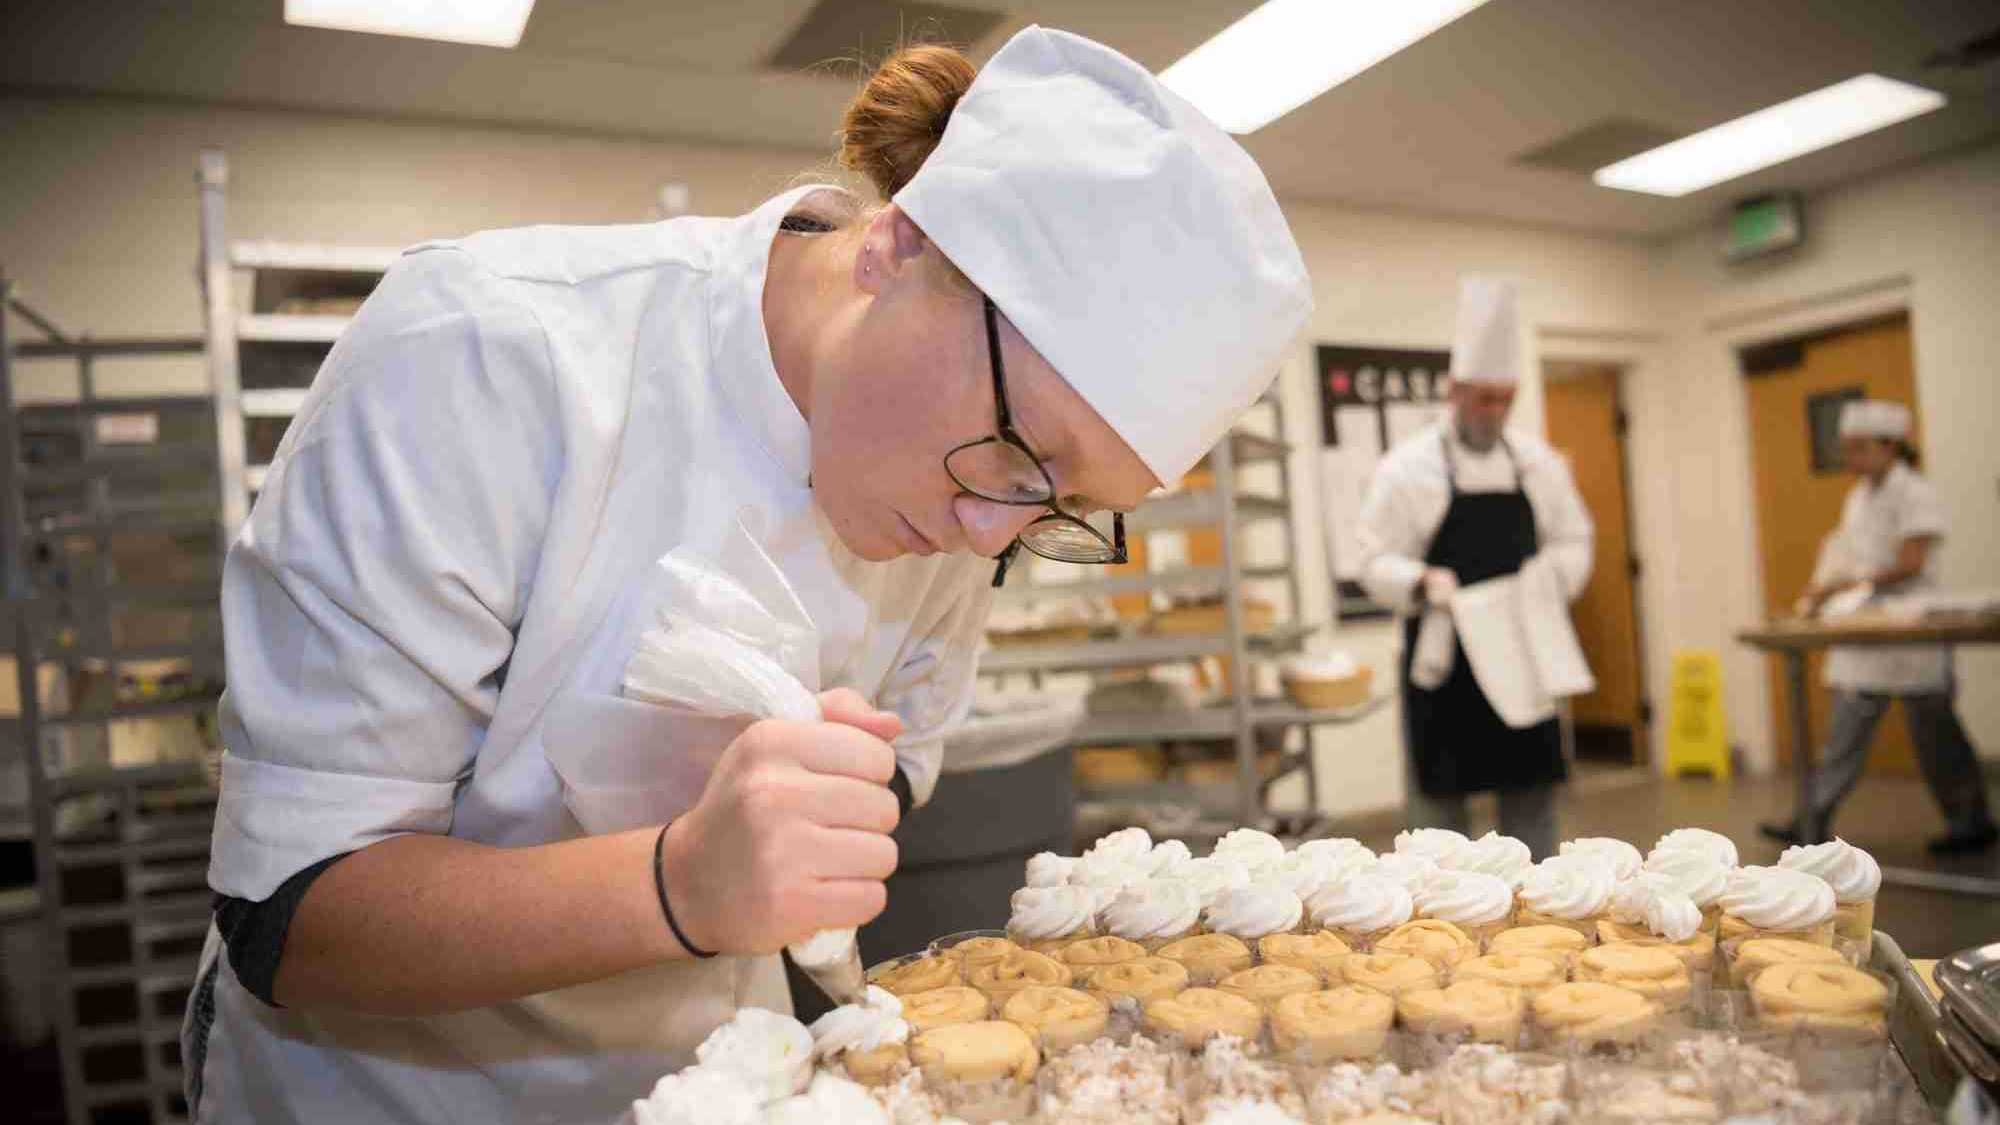 Valencia College Culinary students prepare for the 50th Anniversary of the Grand Buffet – Grand Patisserie at the West Campus